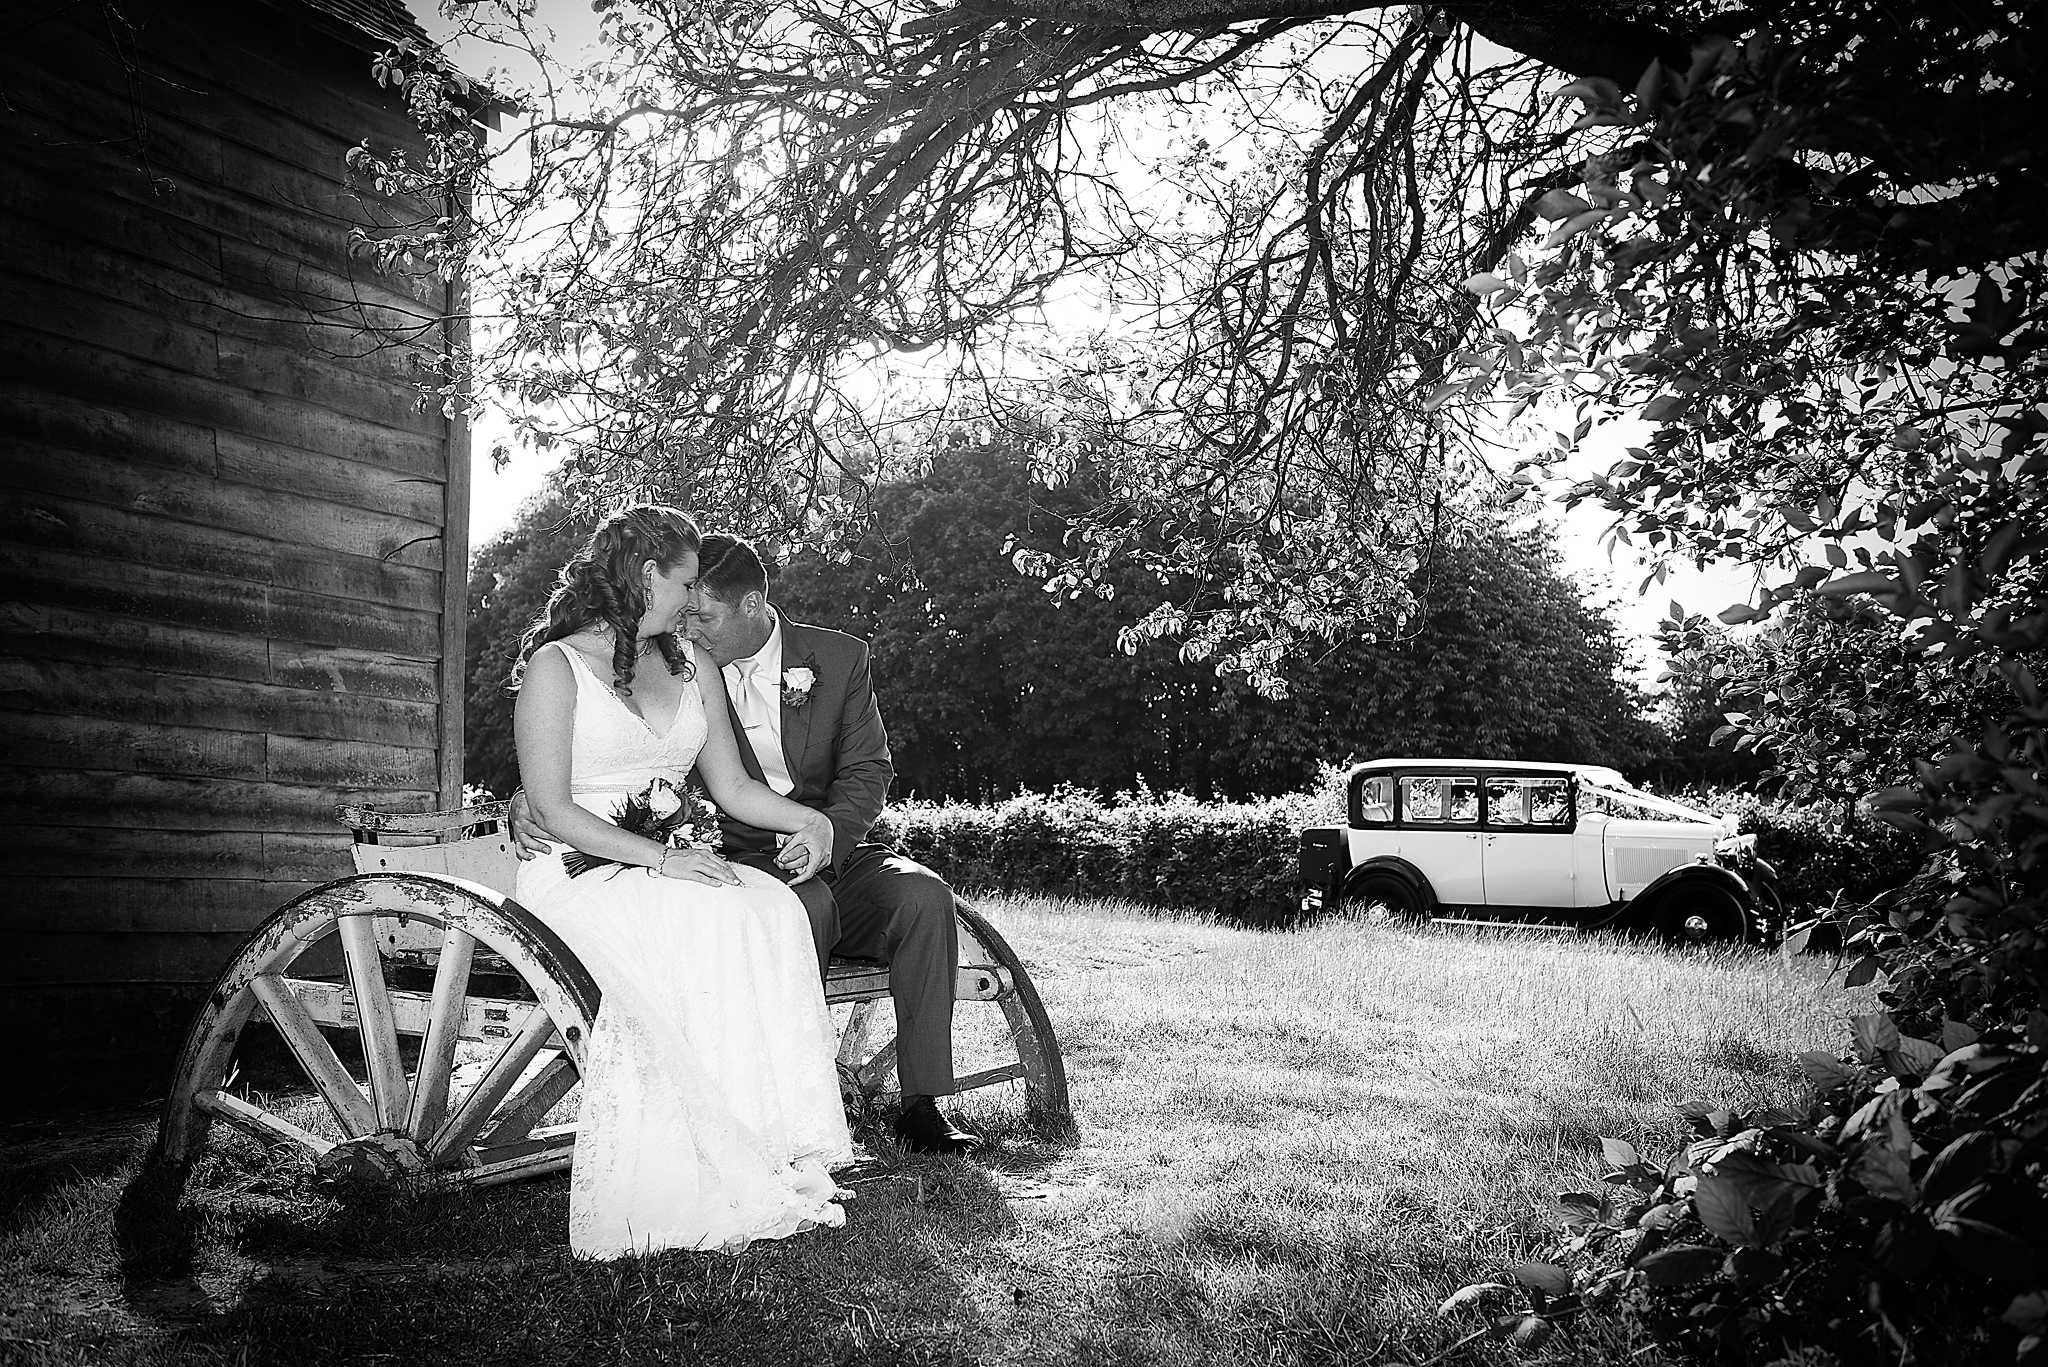 Black And White Traditional Portrait Wedding Car Co Uk In The Background